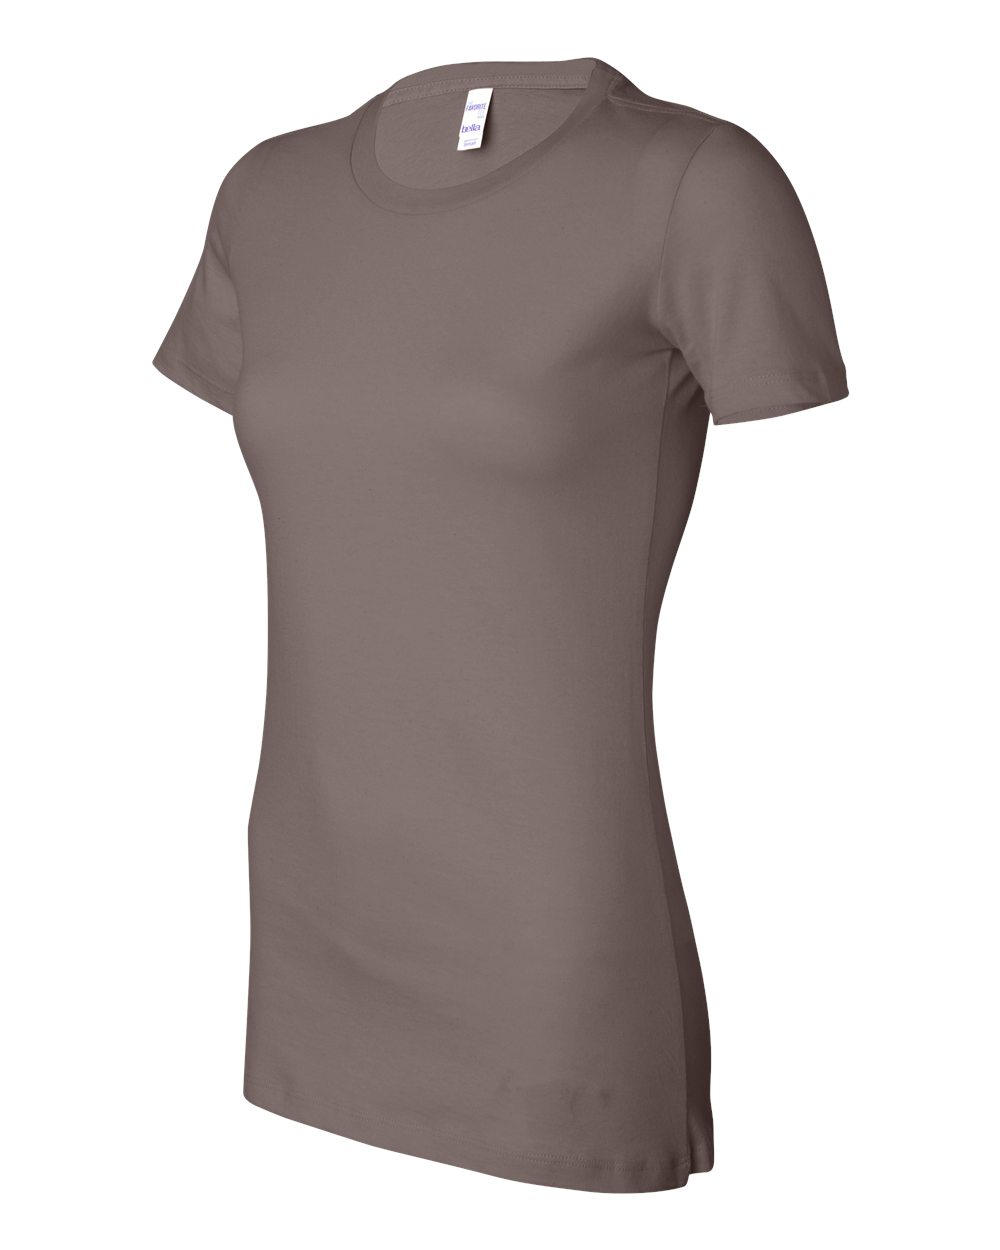 Bella-Canvas-Womens-The-Favorite-T-Shirt-6004-Size-S-2XL thumbnail 123